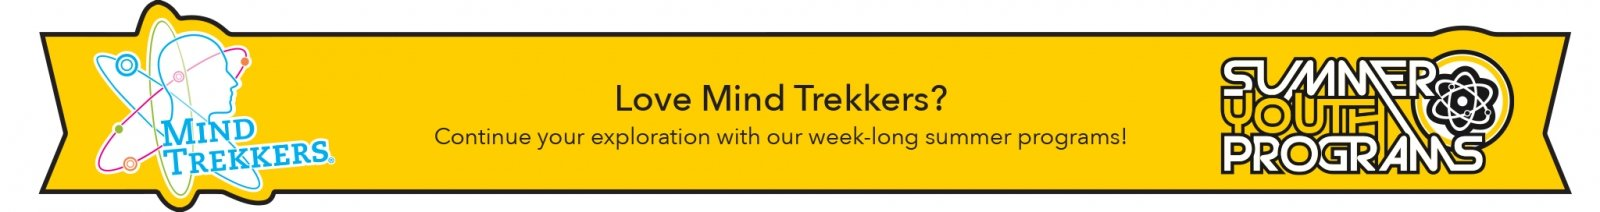 Love Mind Trekkers? Sign up for our week-long summer campus!